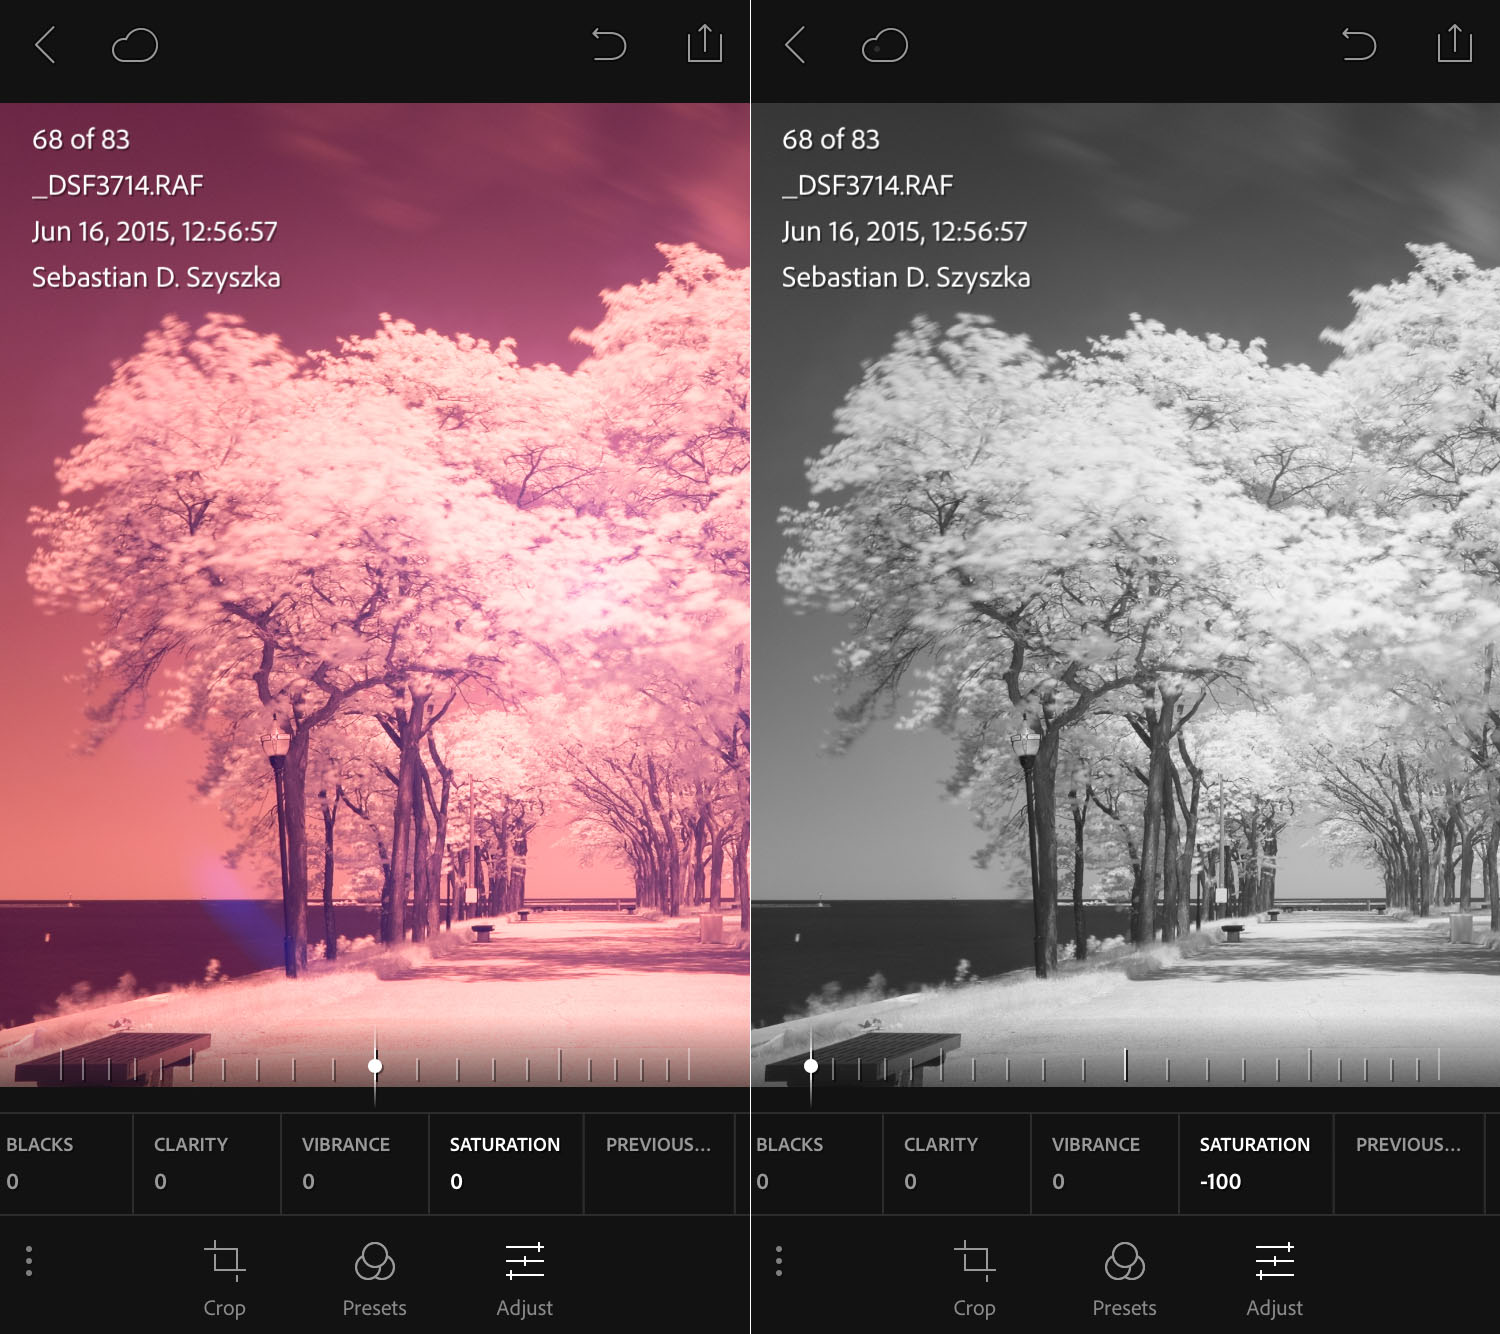 Desaturation greatly reduces the artifacts and makes post cleanup much easier.